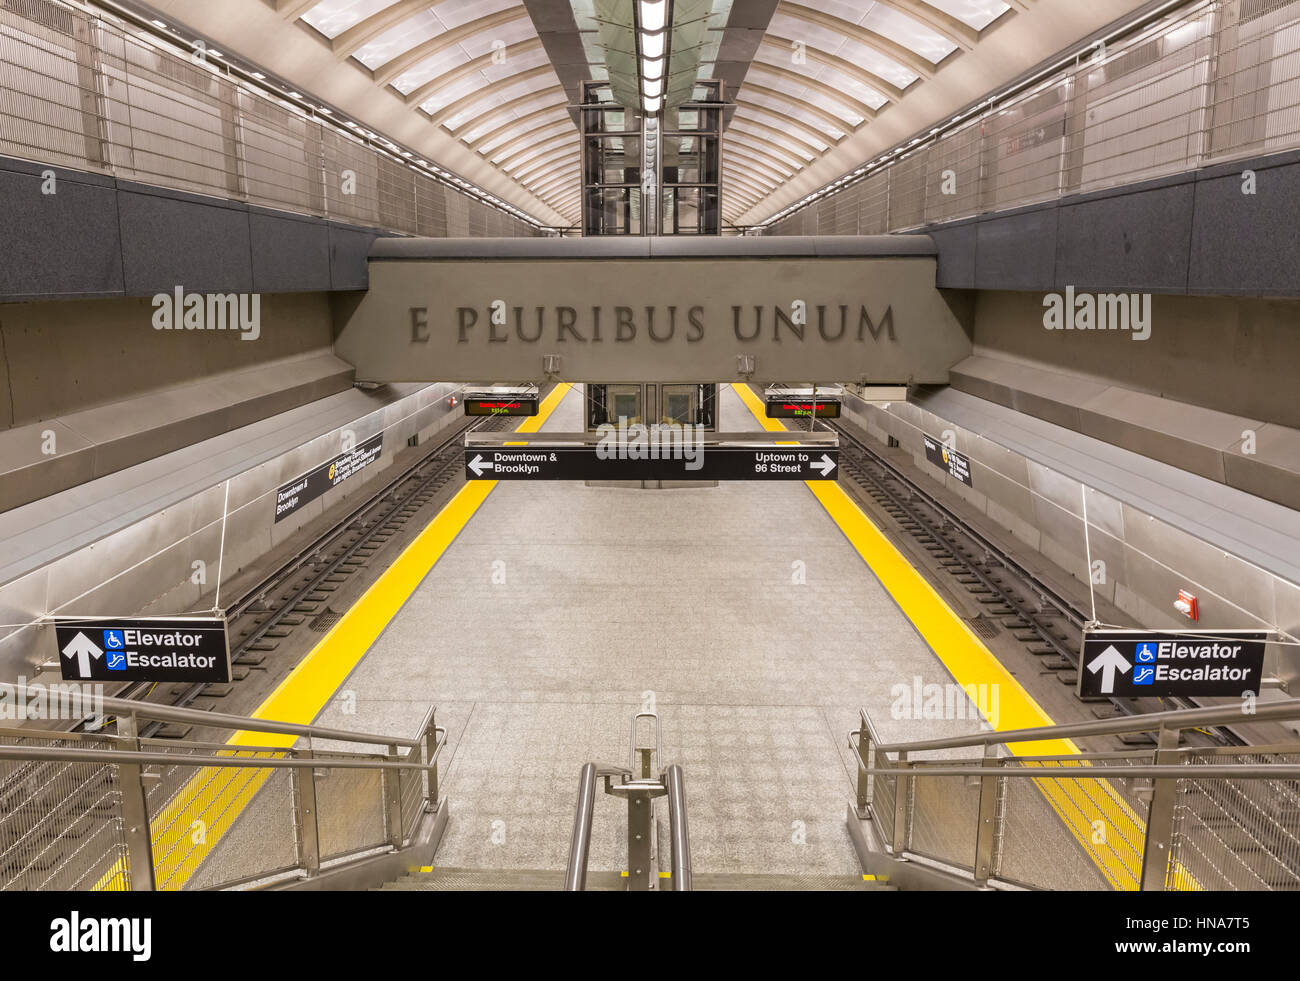 February 5, 2017: A staircase down to the new 86th Street Q Train platform on the Second Avenue Subway line, New - Stock Image